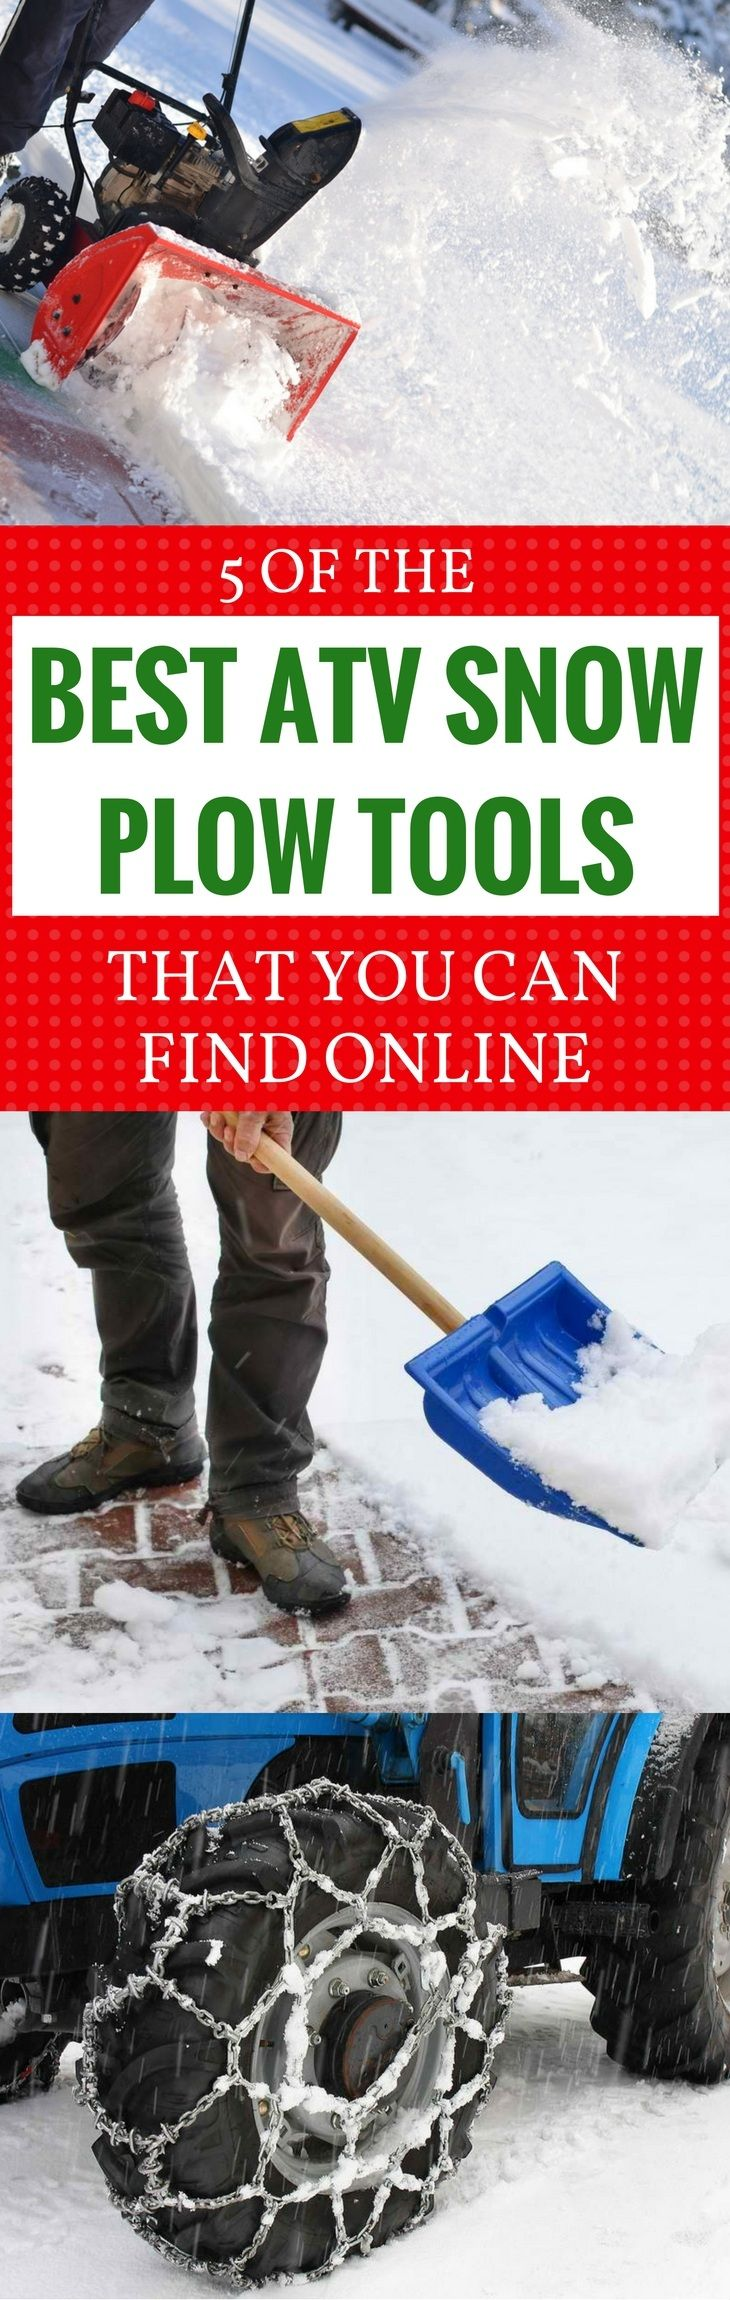 Know where to find the best ATV snow plow tools for tidying up the streets after long and unforgiving Winters. Read this article now to find out! Read more at: https://gardenambition.com/best-atv-snow-plow/